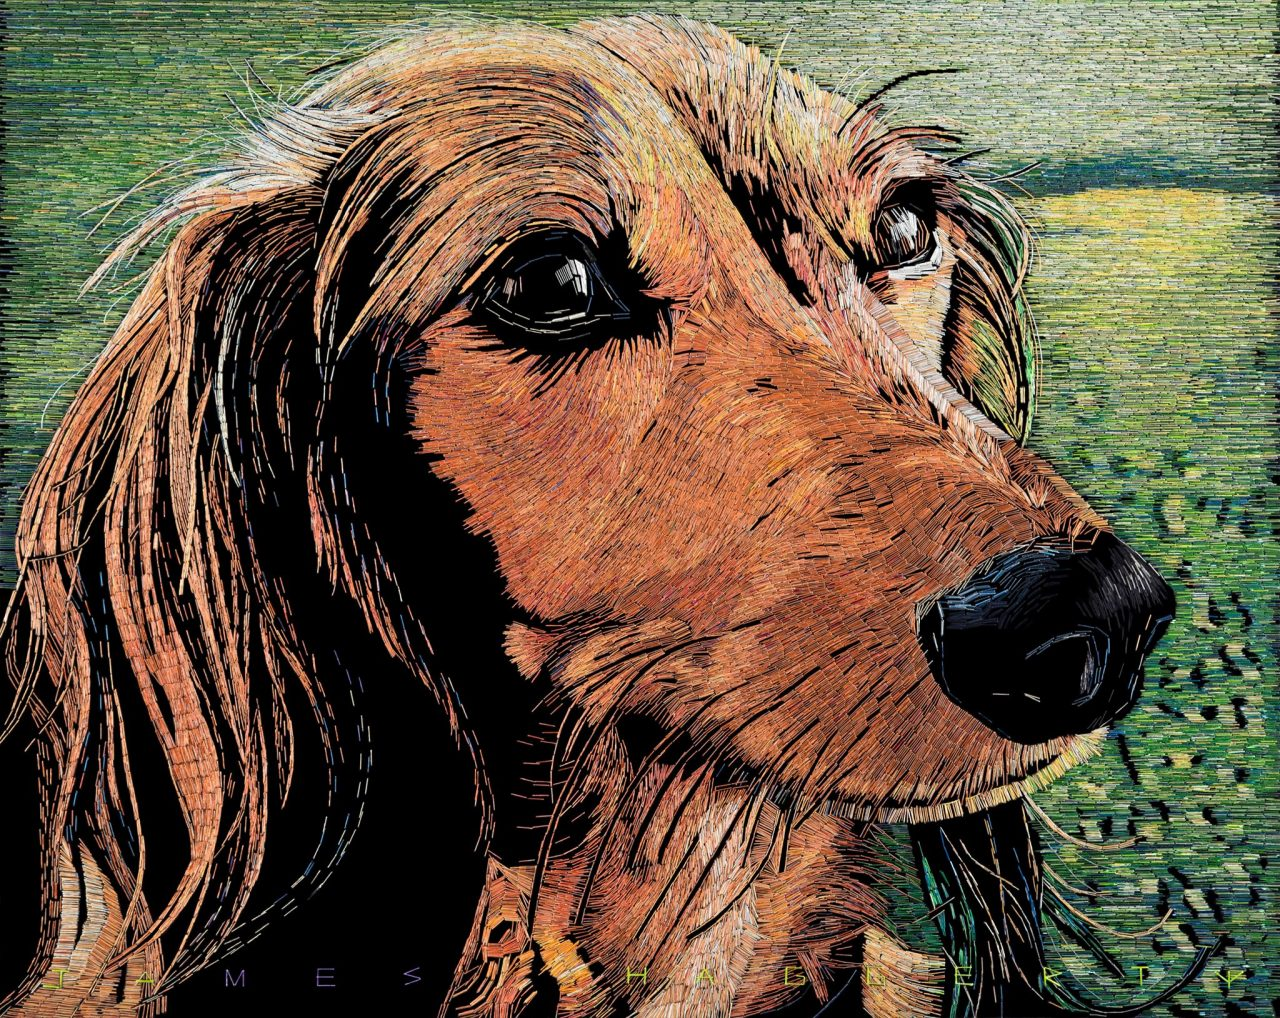 A Beautiful Large Scale Mosaic of an Adorable Dachshund Made Out of Over 75,000 Colored Staples